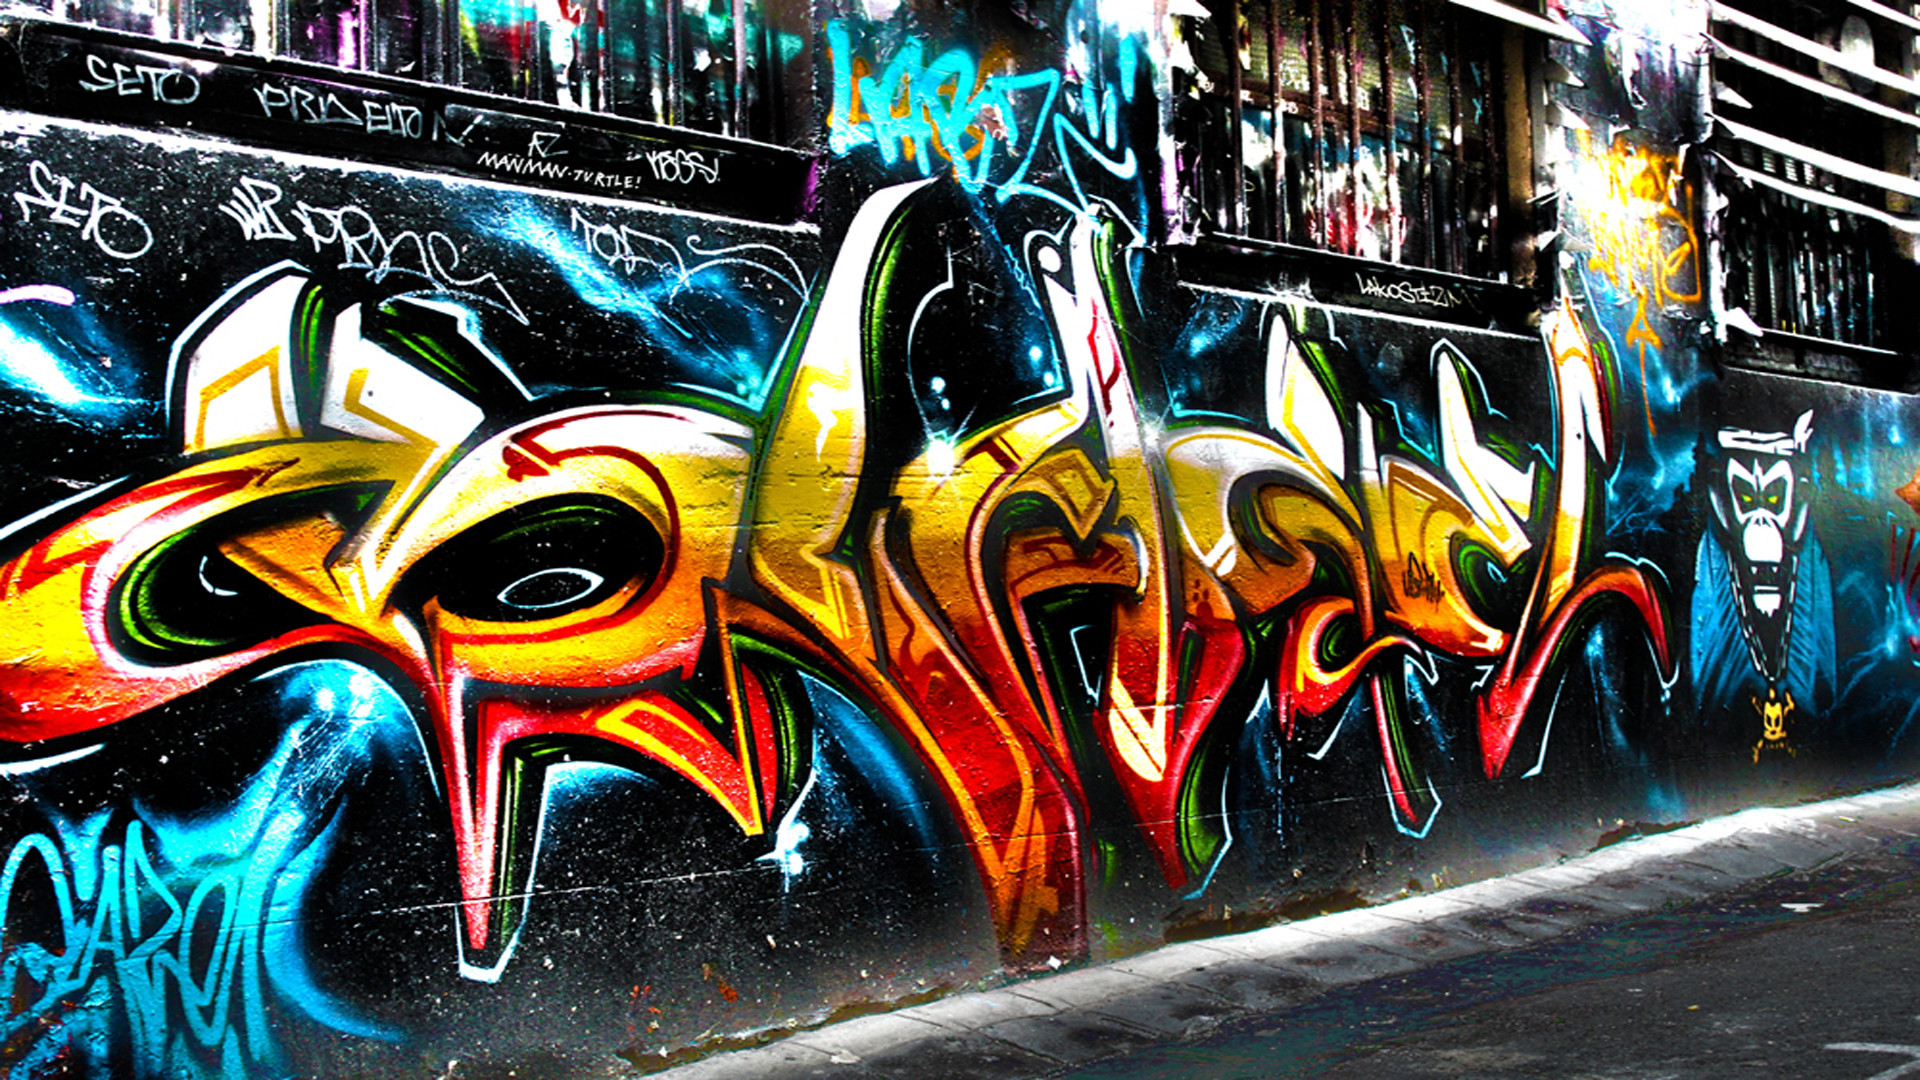 1920x1080 Graffiti Art Wallpapers Picture Download Free